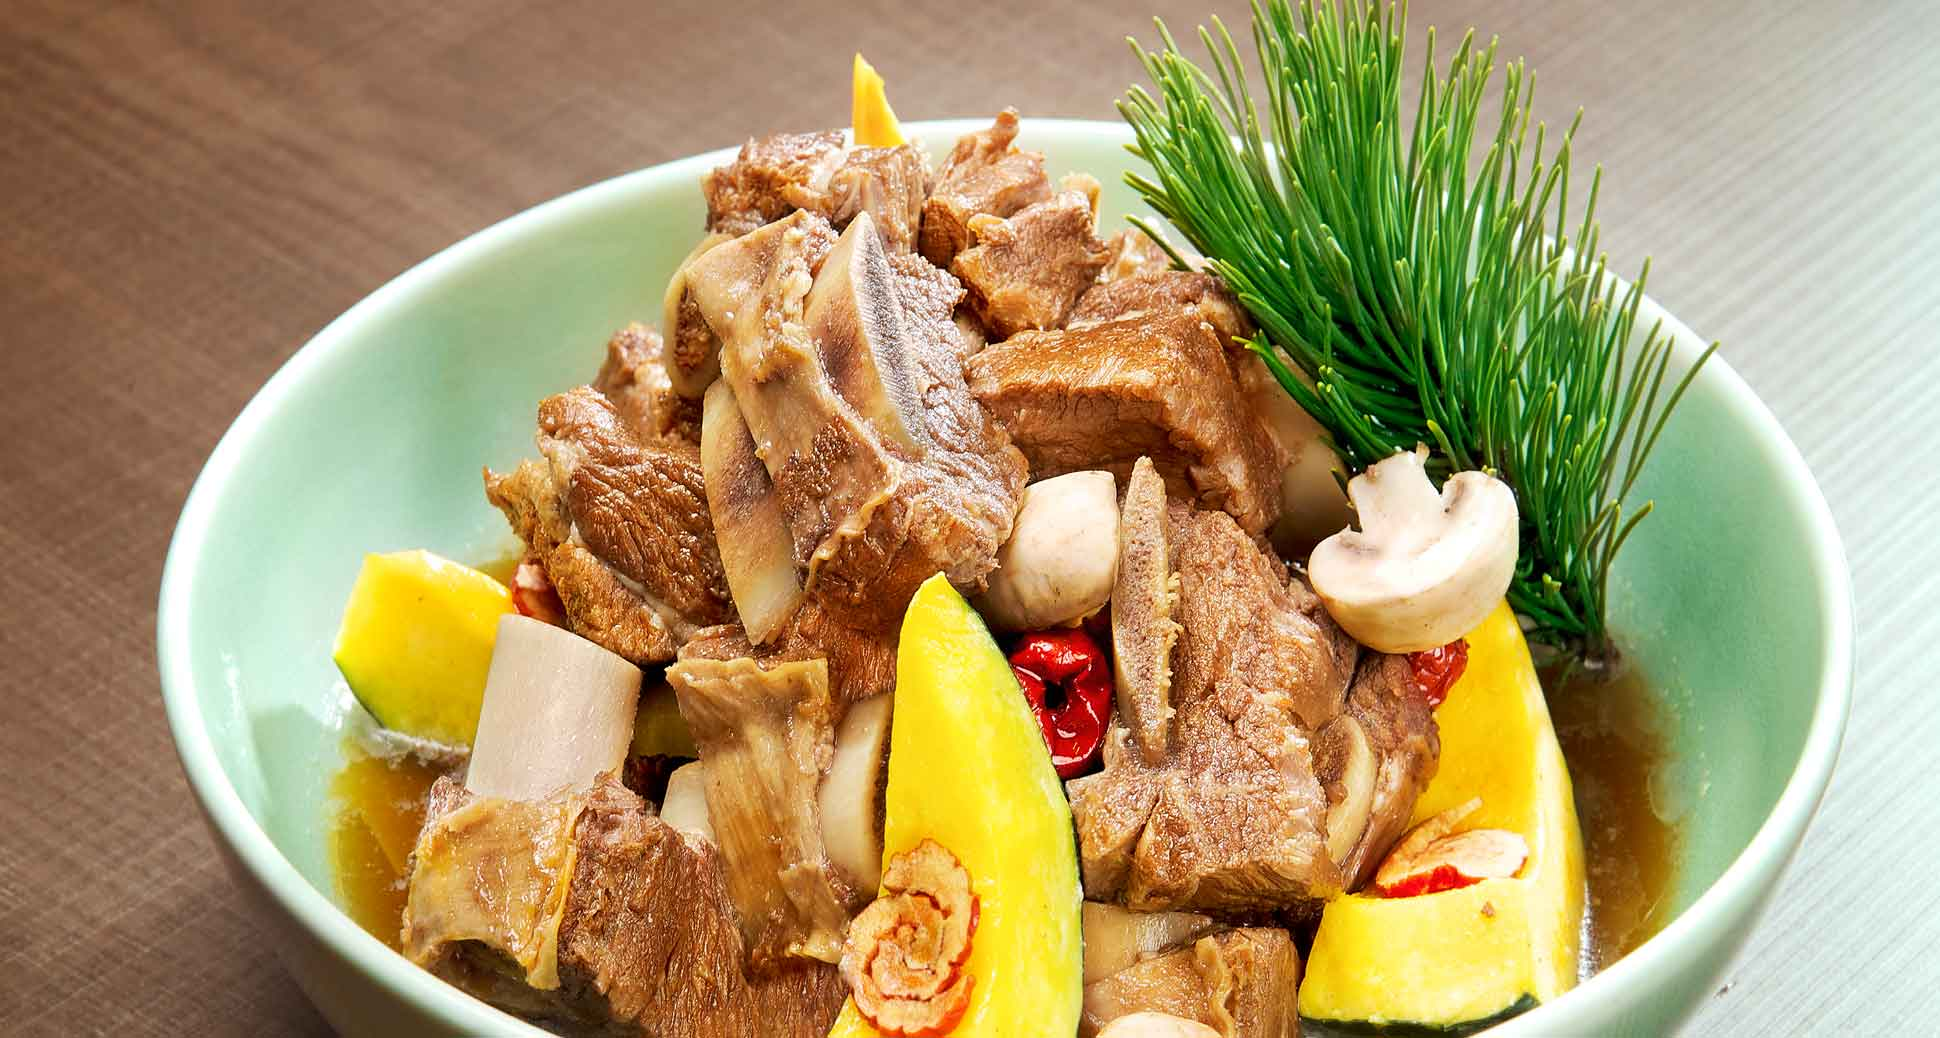 Galbi-jjim: perfect meal for any taste